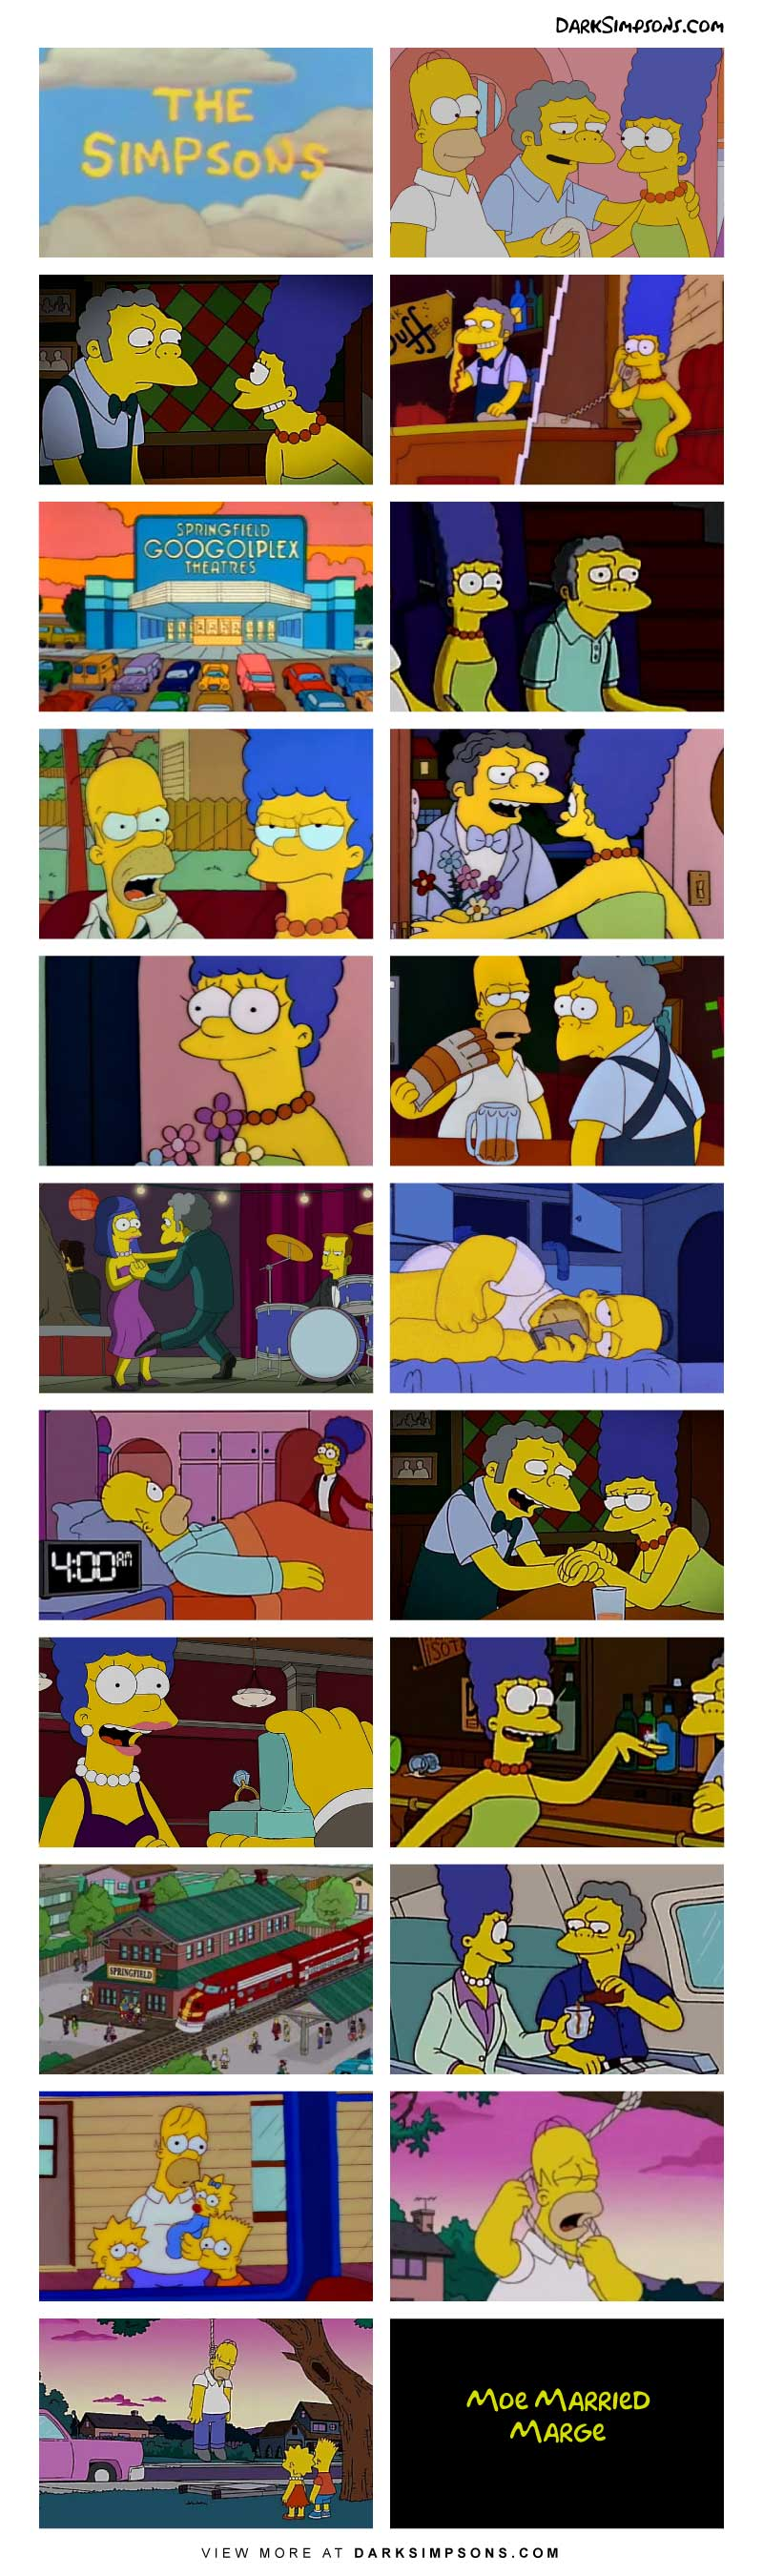 Marge is very unhappy in her current marriage, but she finds some comfort when she crushes on the local barkeep, Moe.